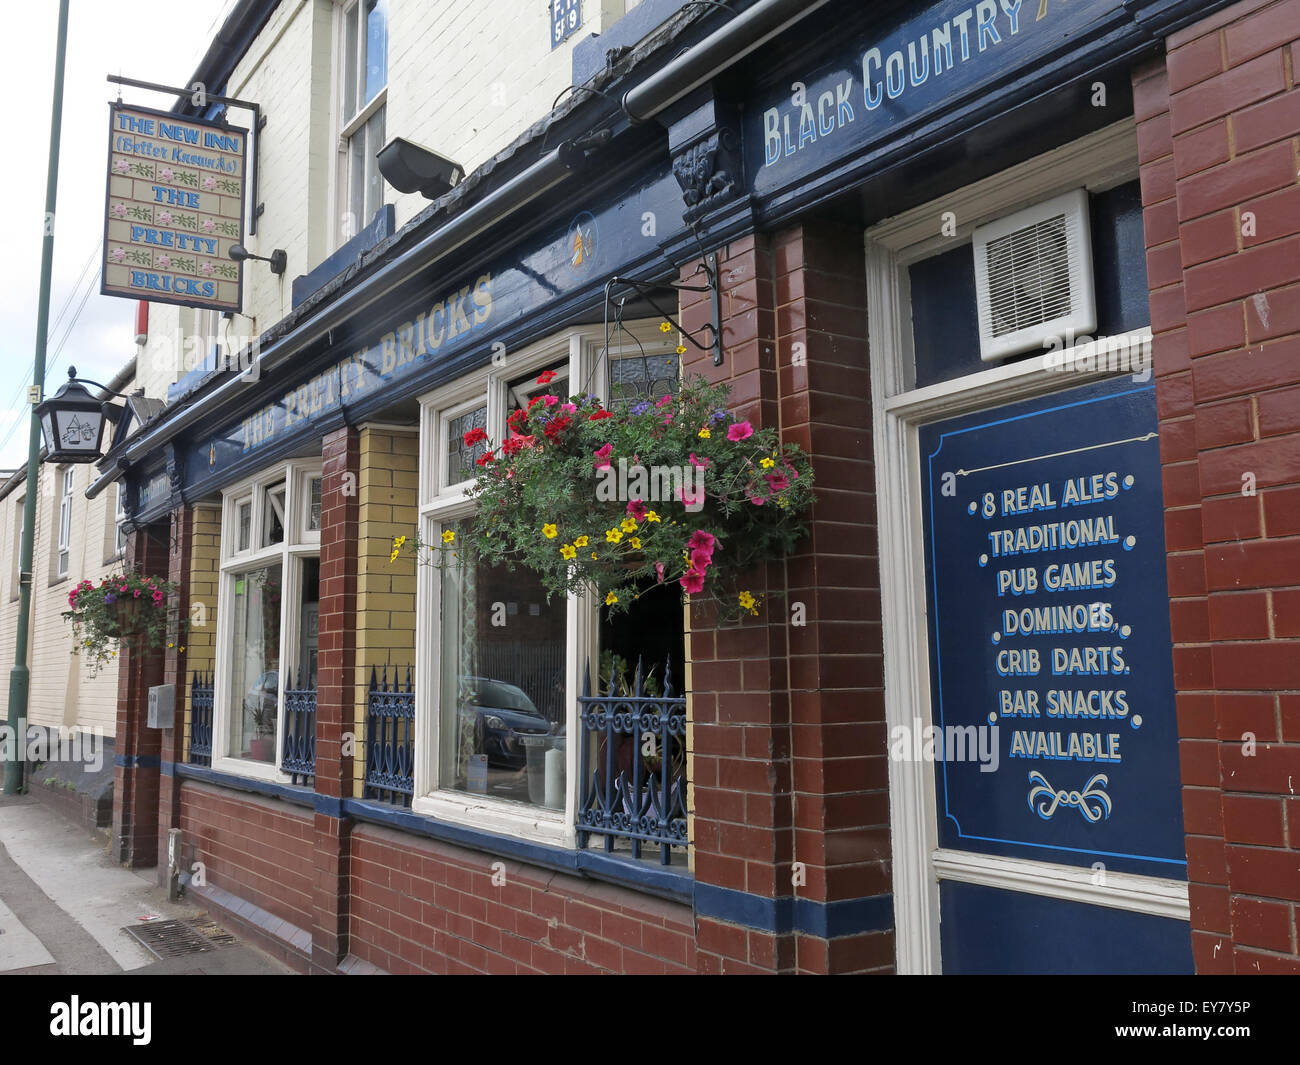 The Pretty Bricks Pub, Walsall, Black Country, West Midlands, England, UK - Stock Image